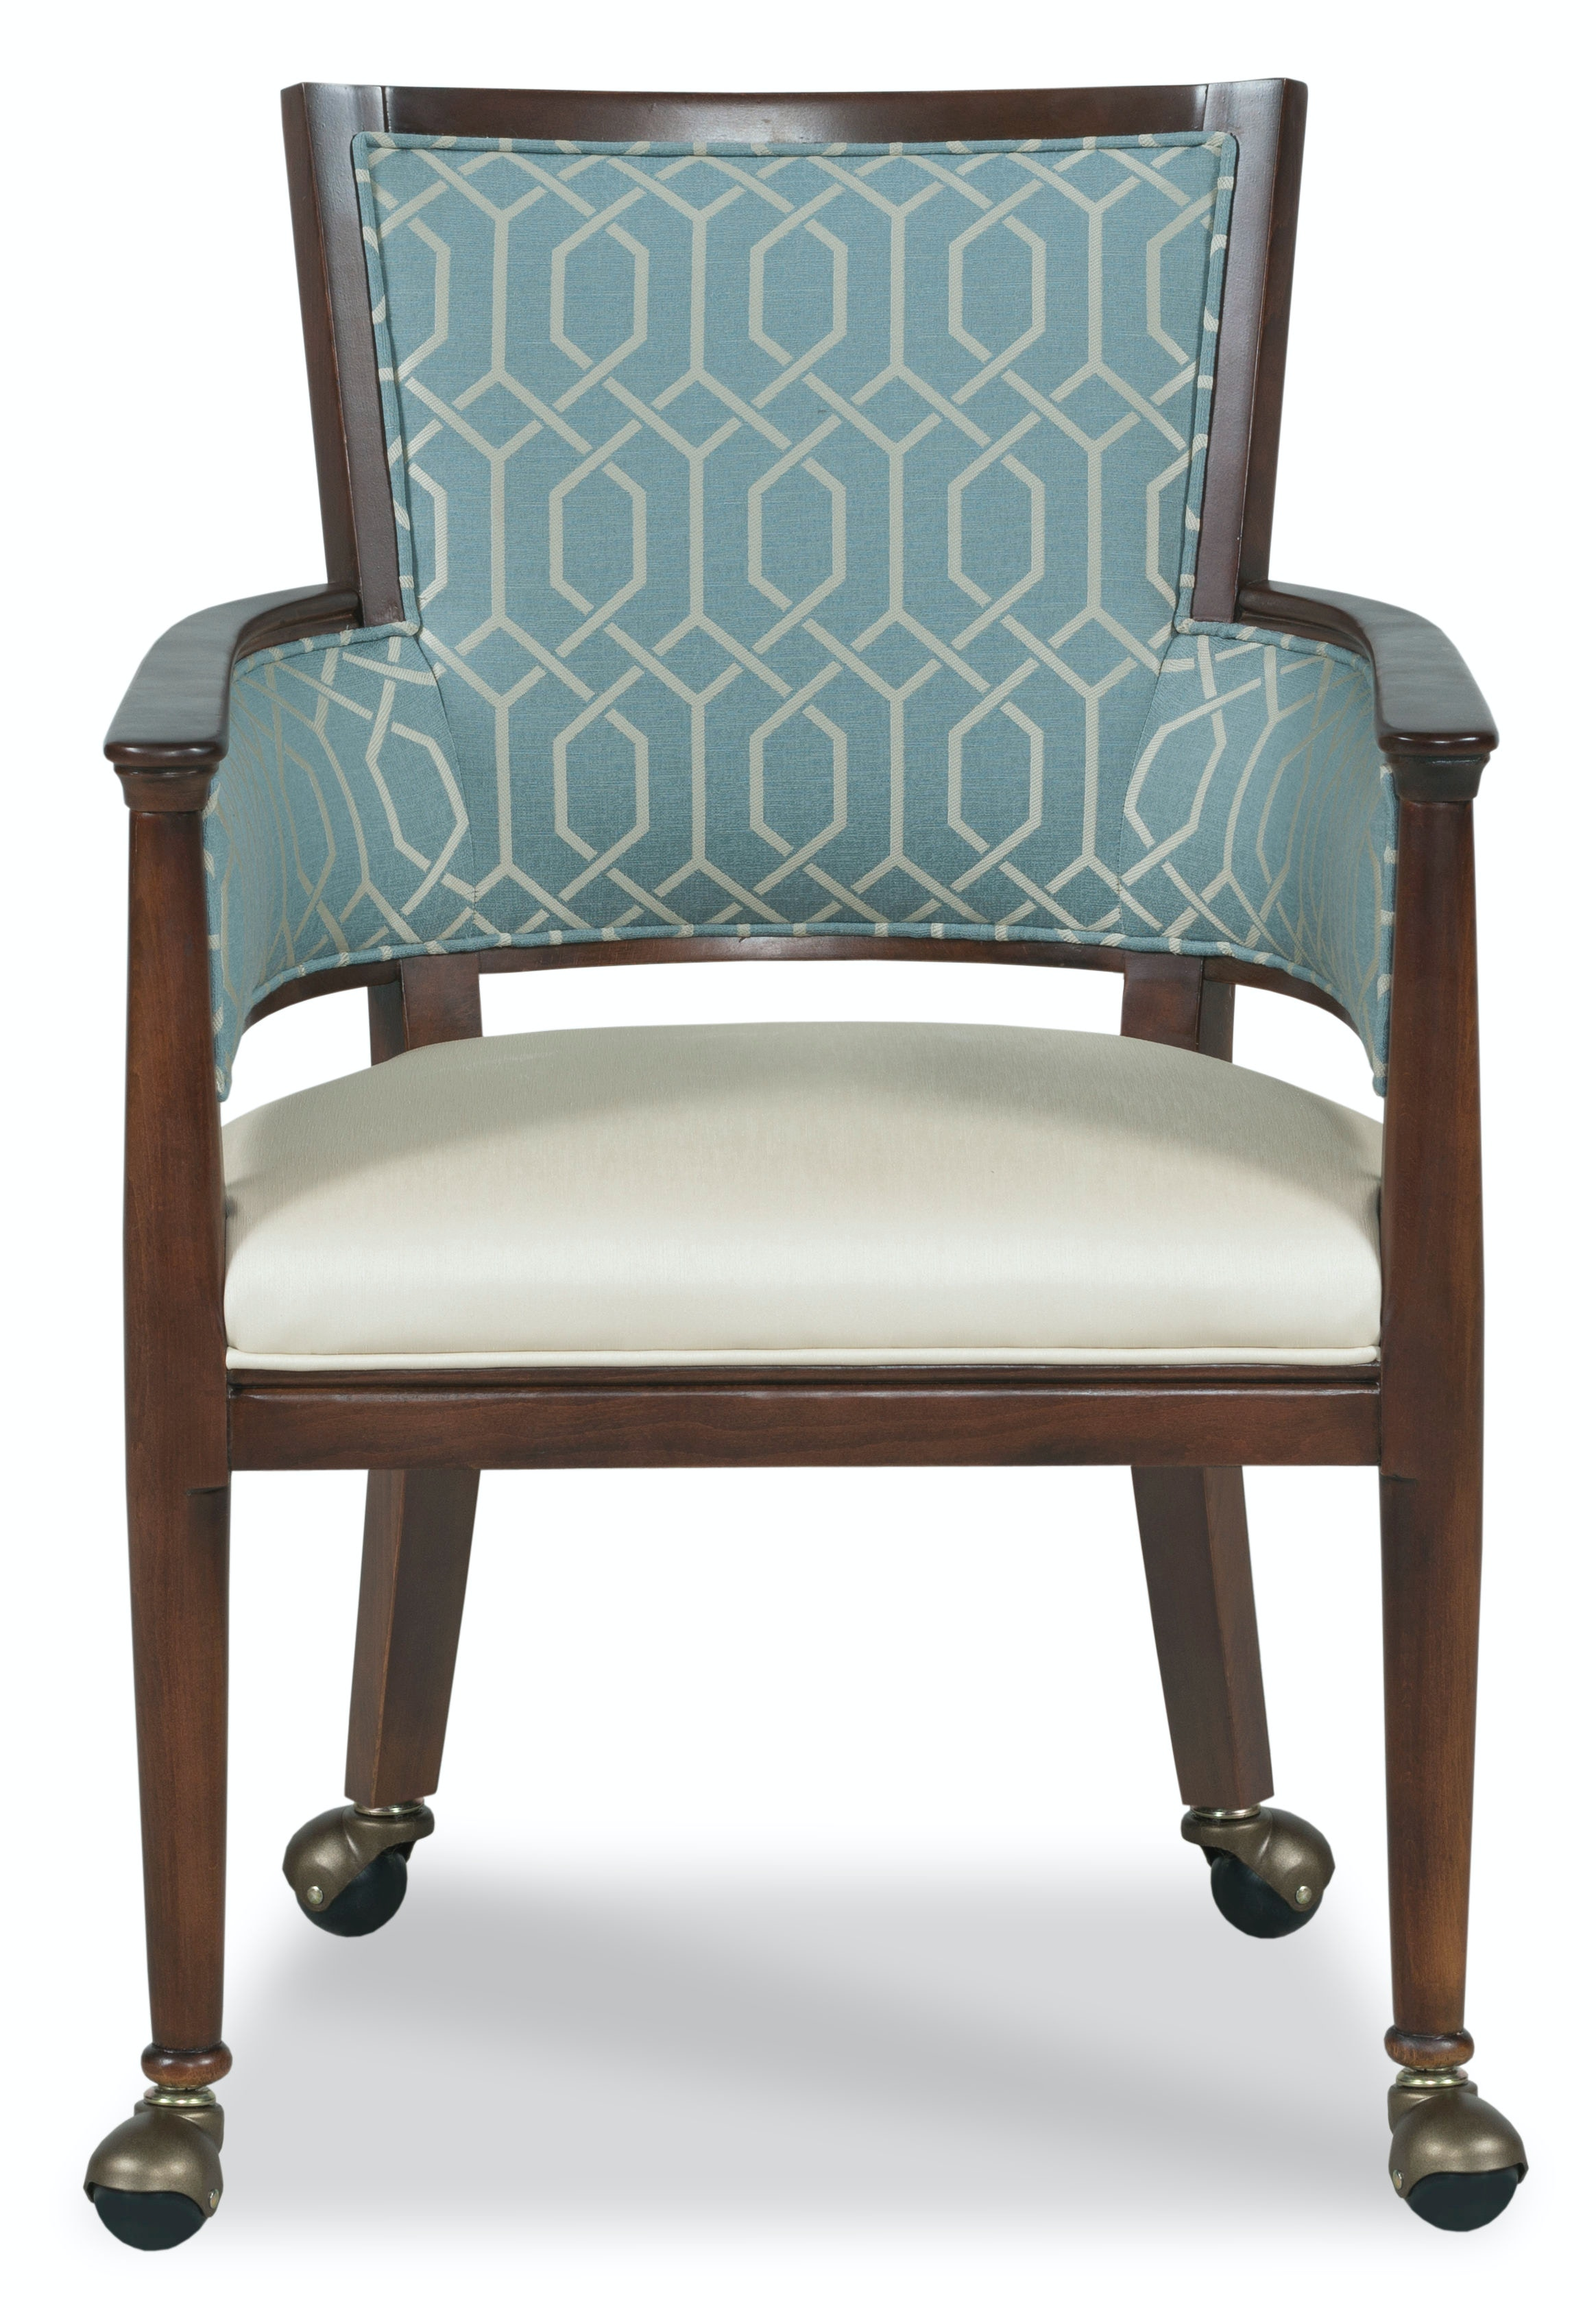 murphy chair company real comfort adirondack fairfield dining room arm 8727 a4